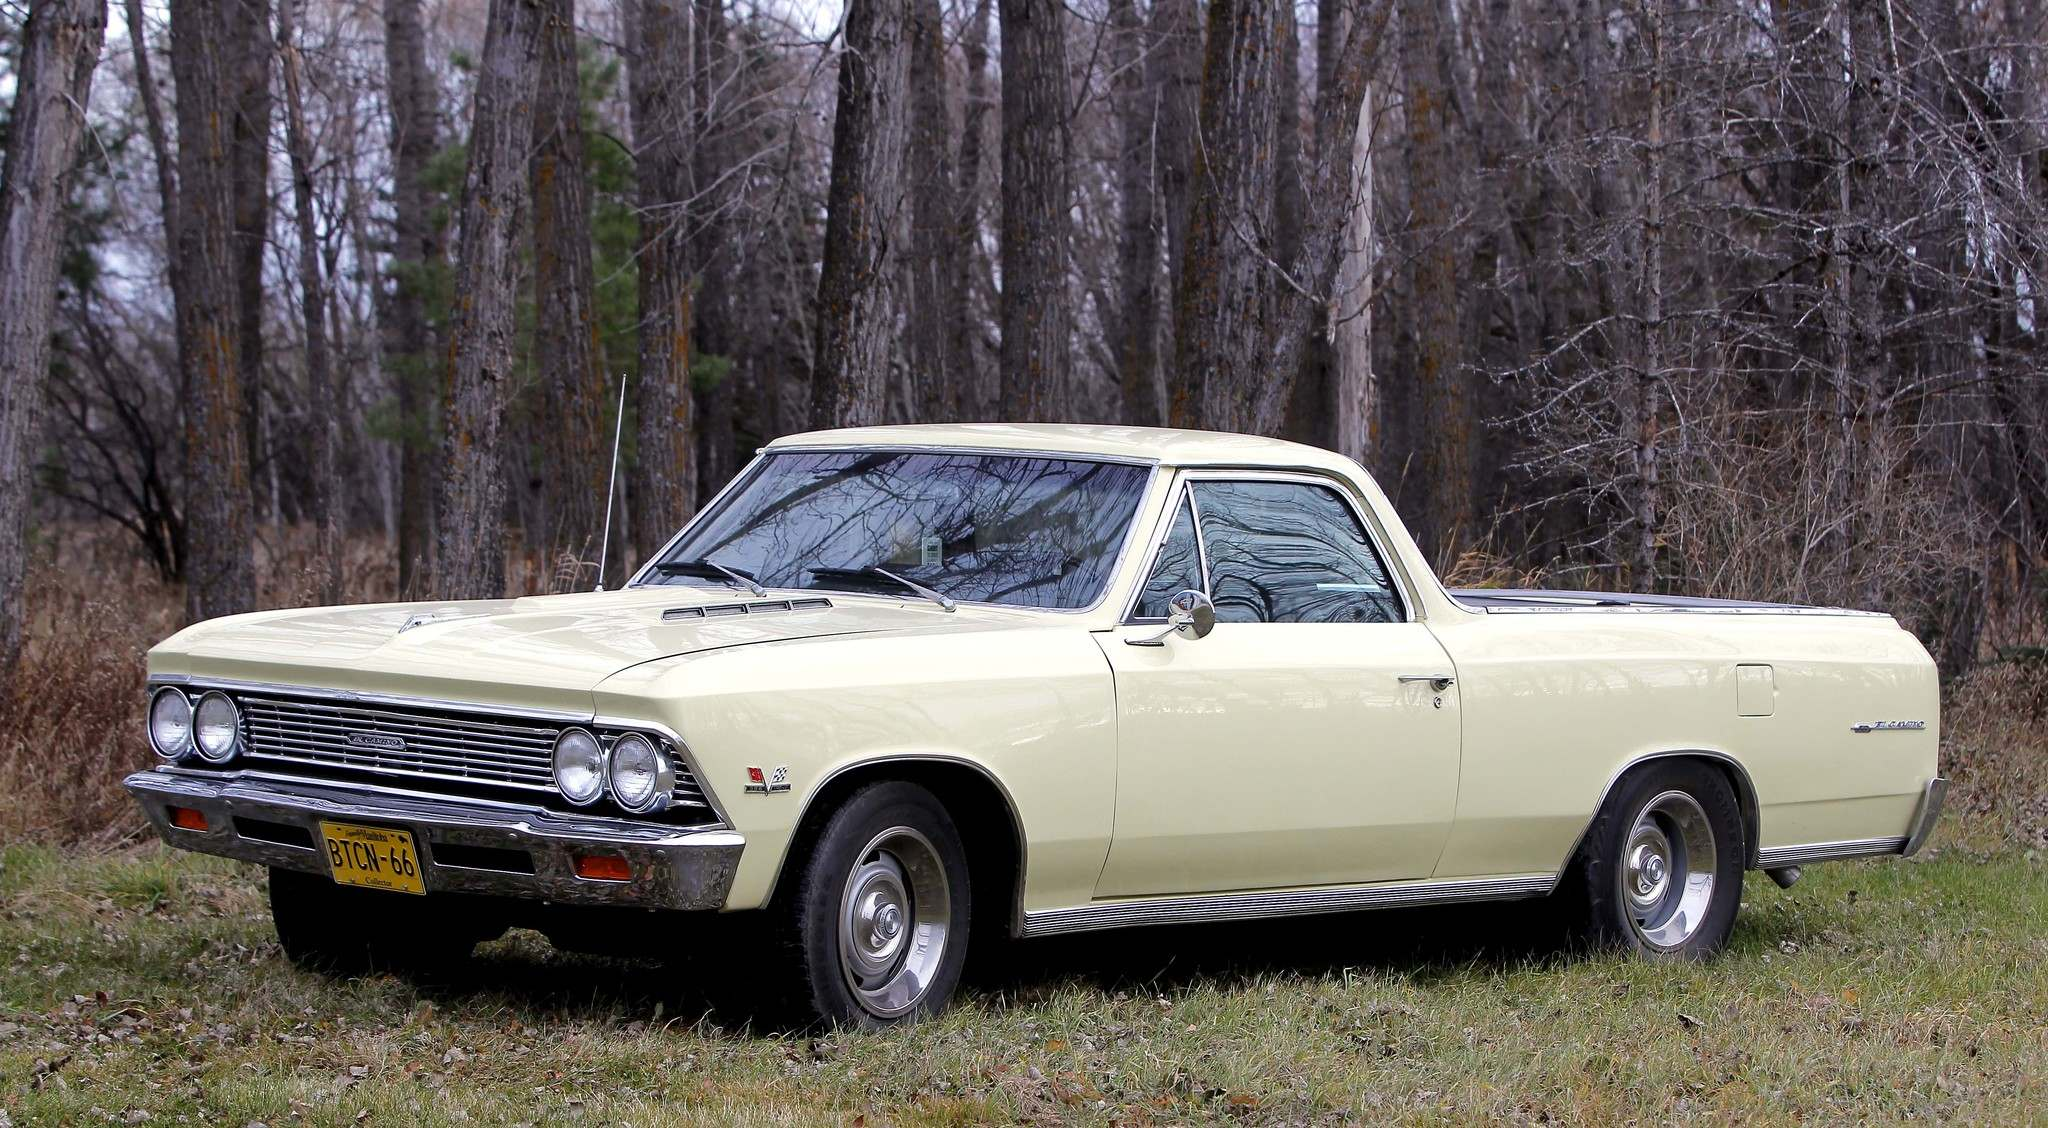 This 1966 Chevrolet El Camino is a factory big-block car with the ability to do some light hauling.